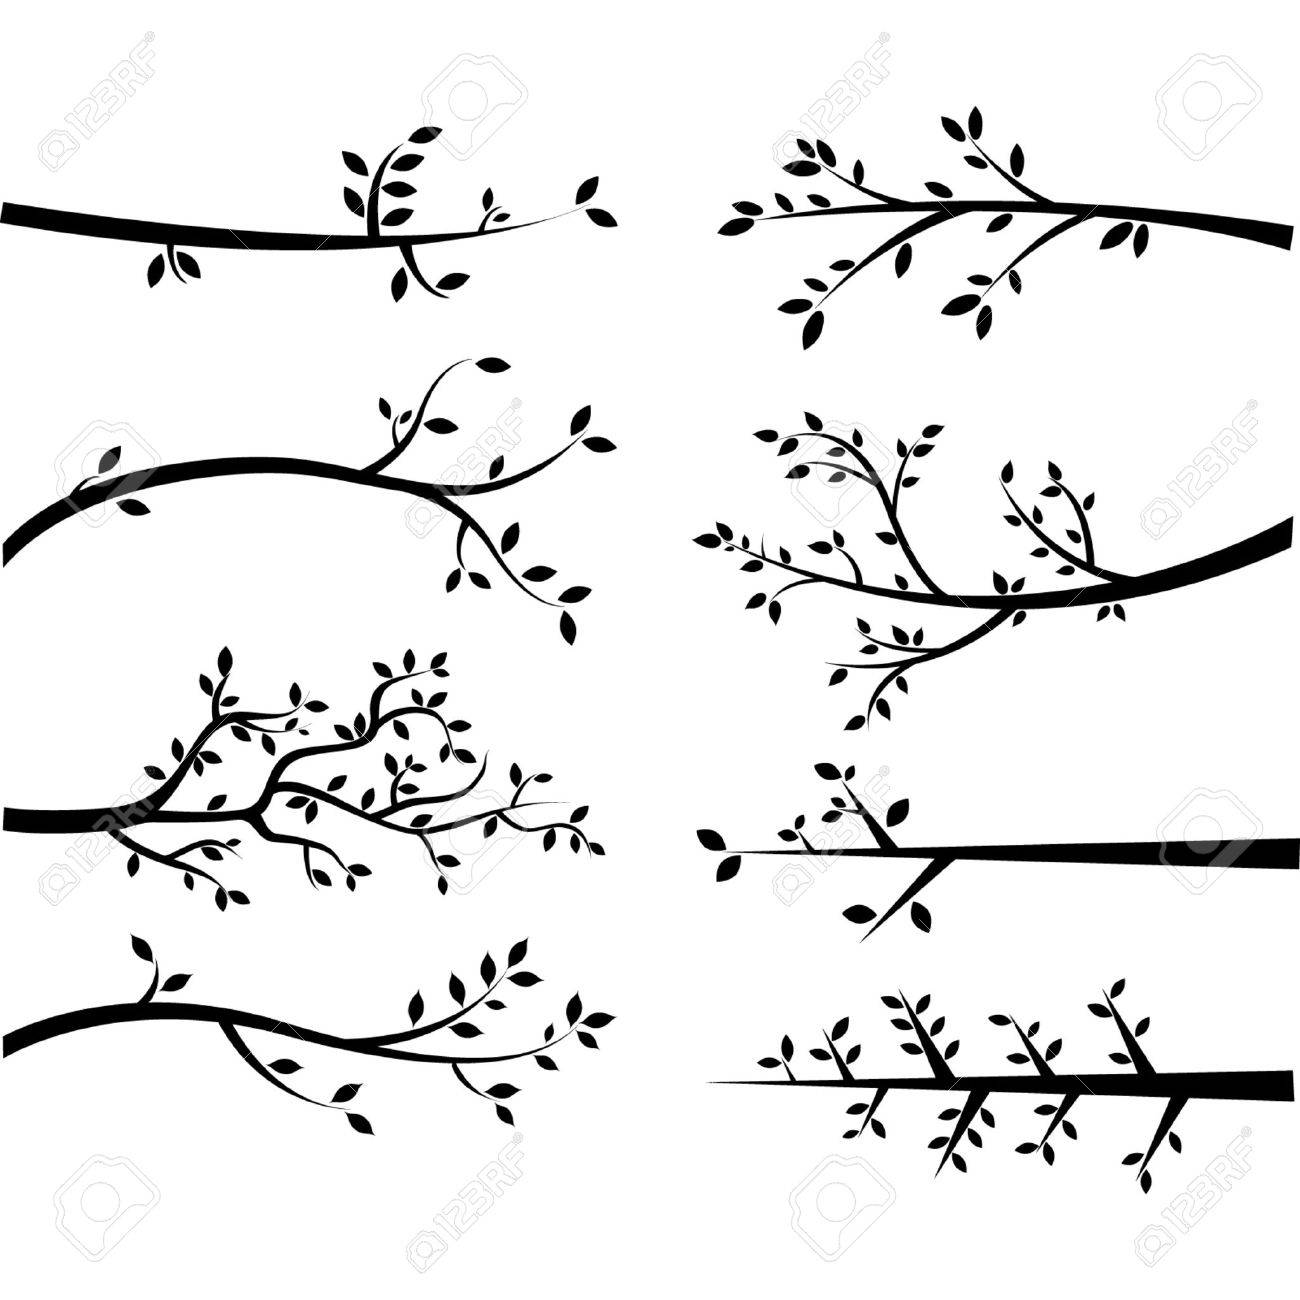 Branch Silhouettes - 41772843